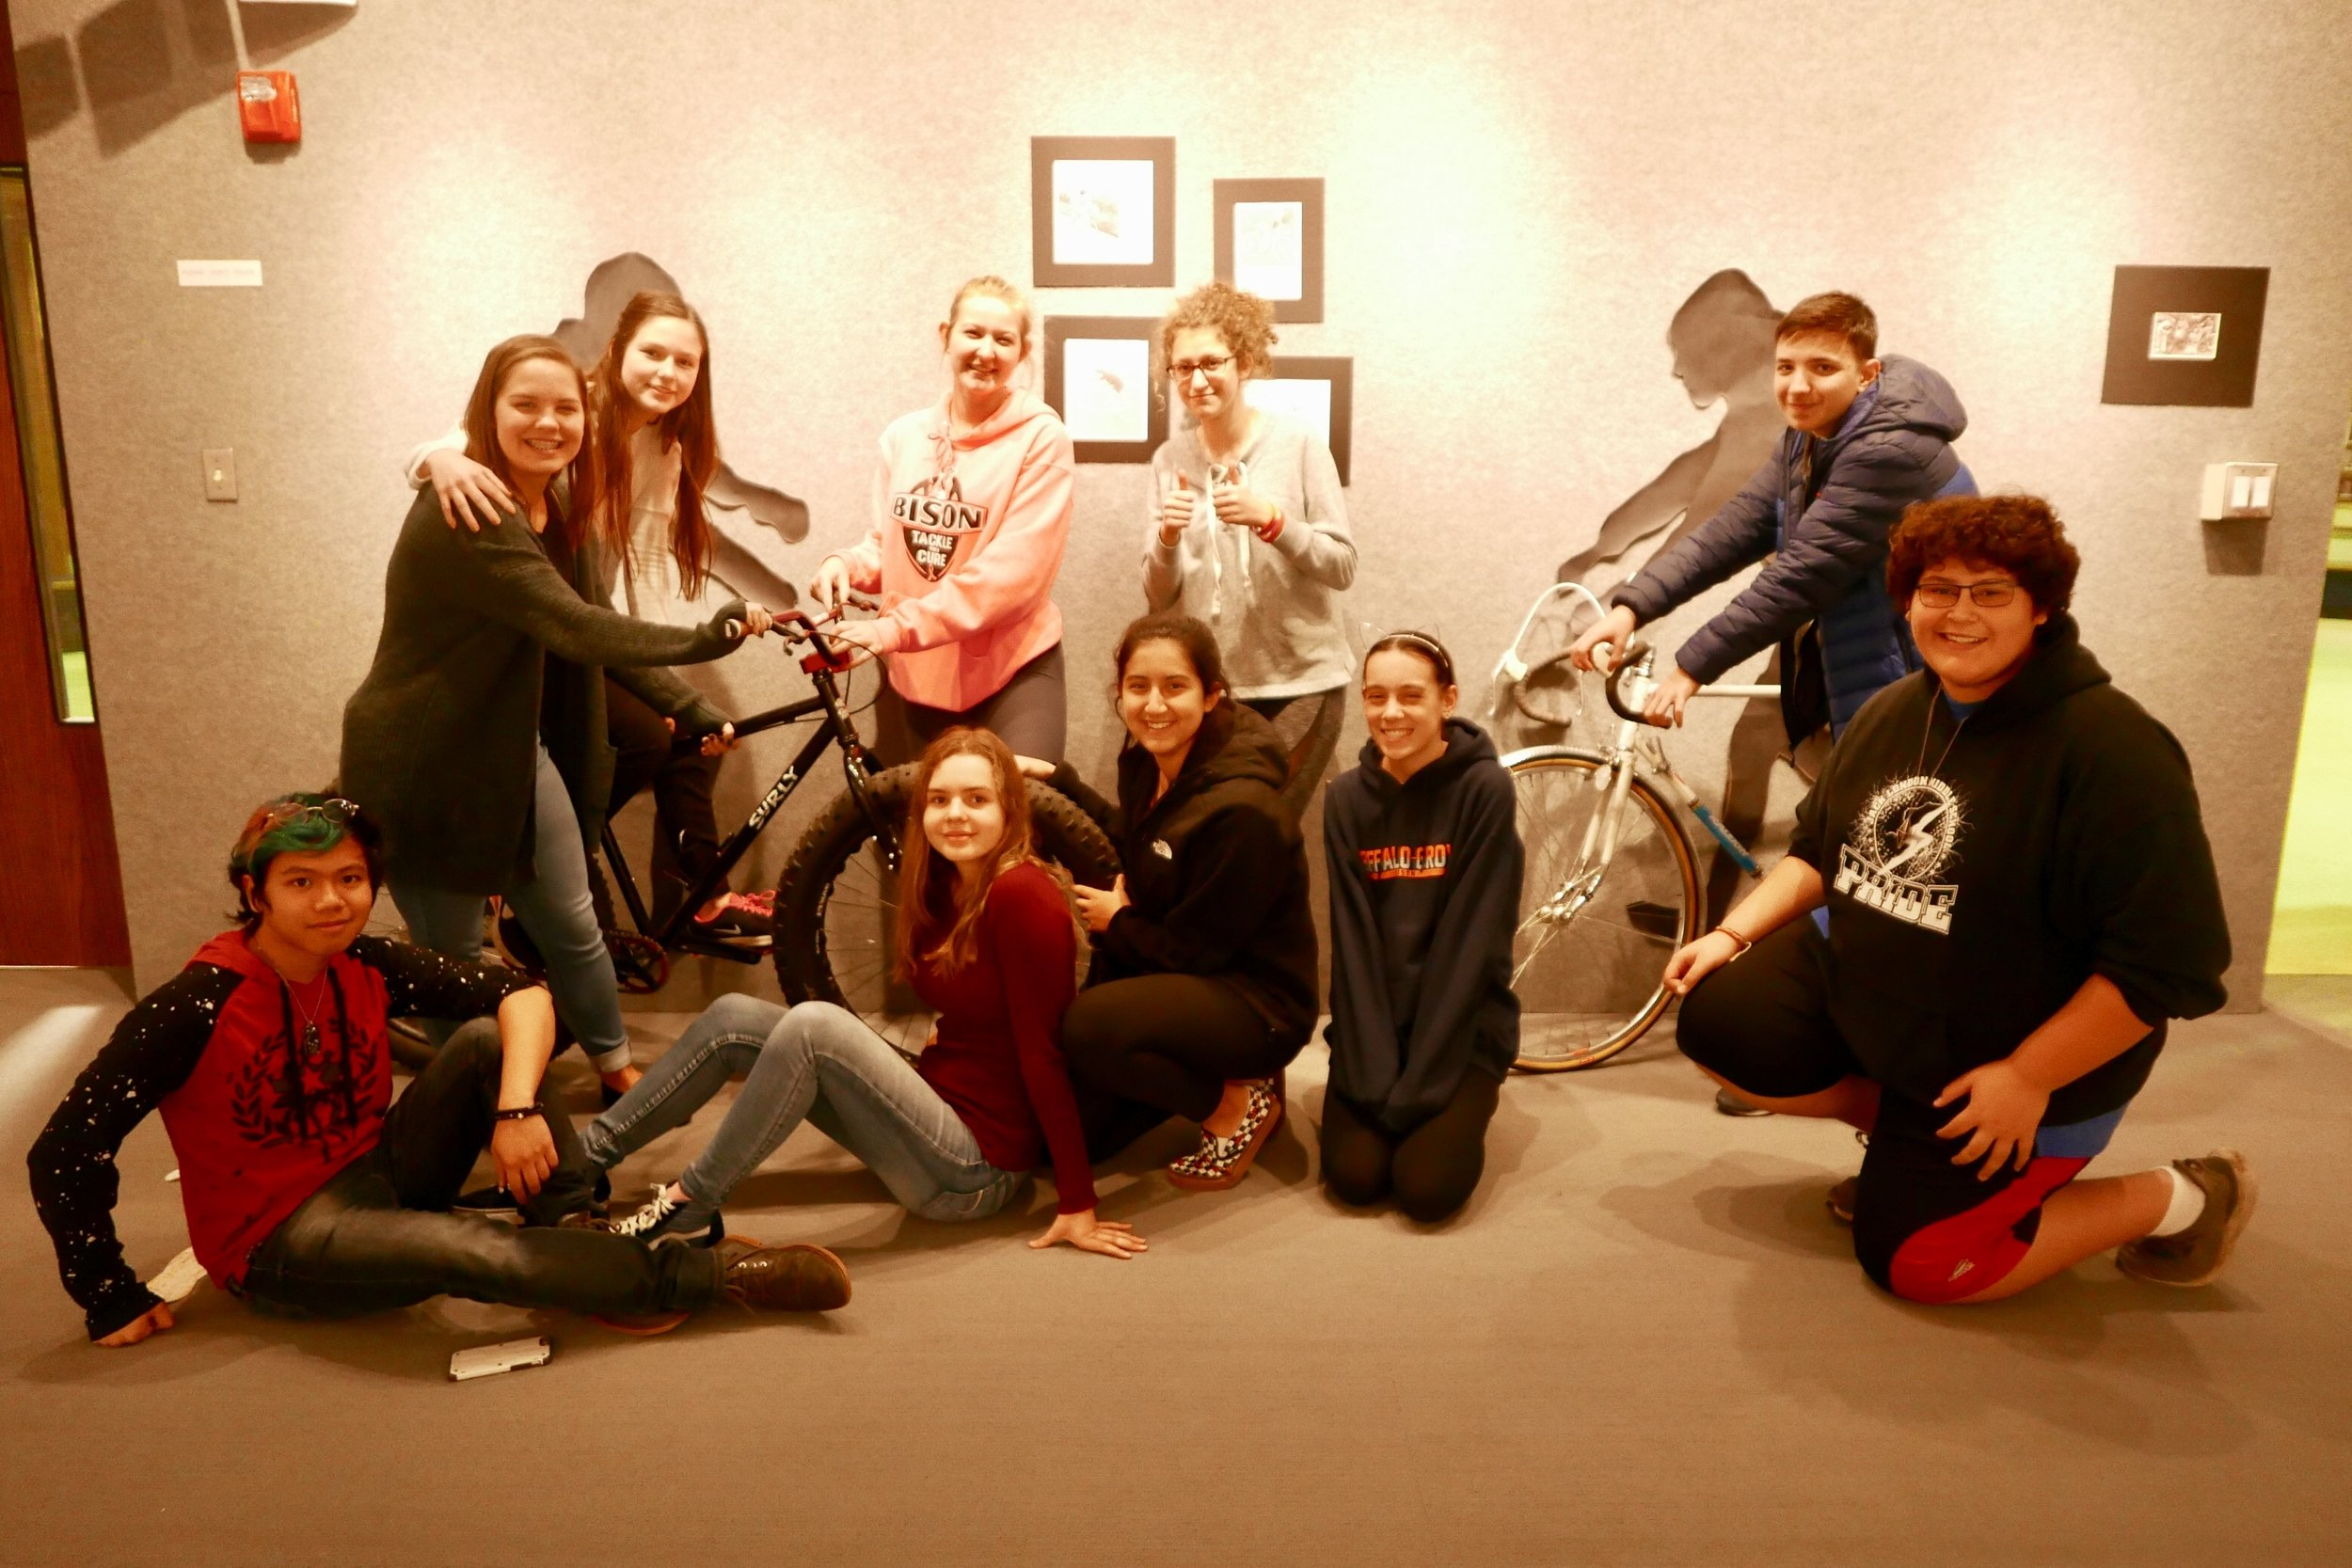 members of the one grove gallery in the student-run space. the gallery provides real world learning experiences for students.